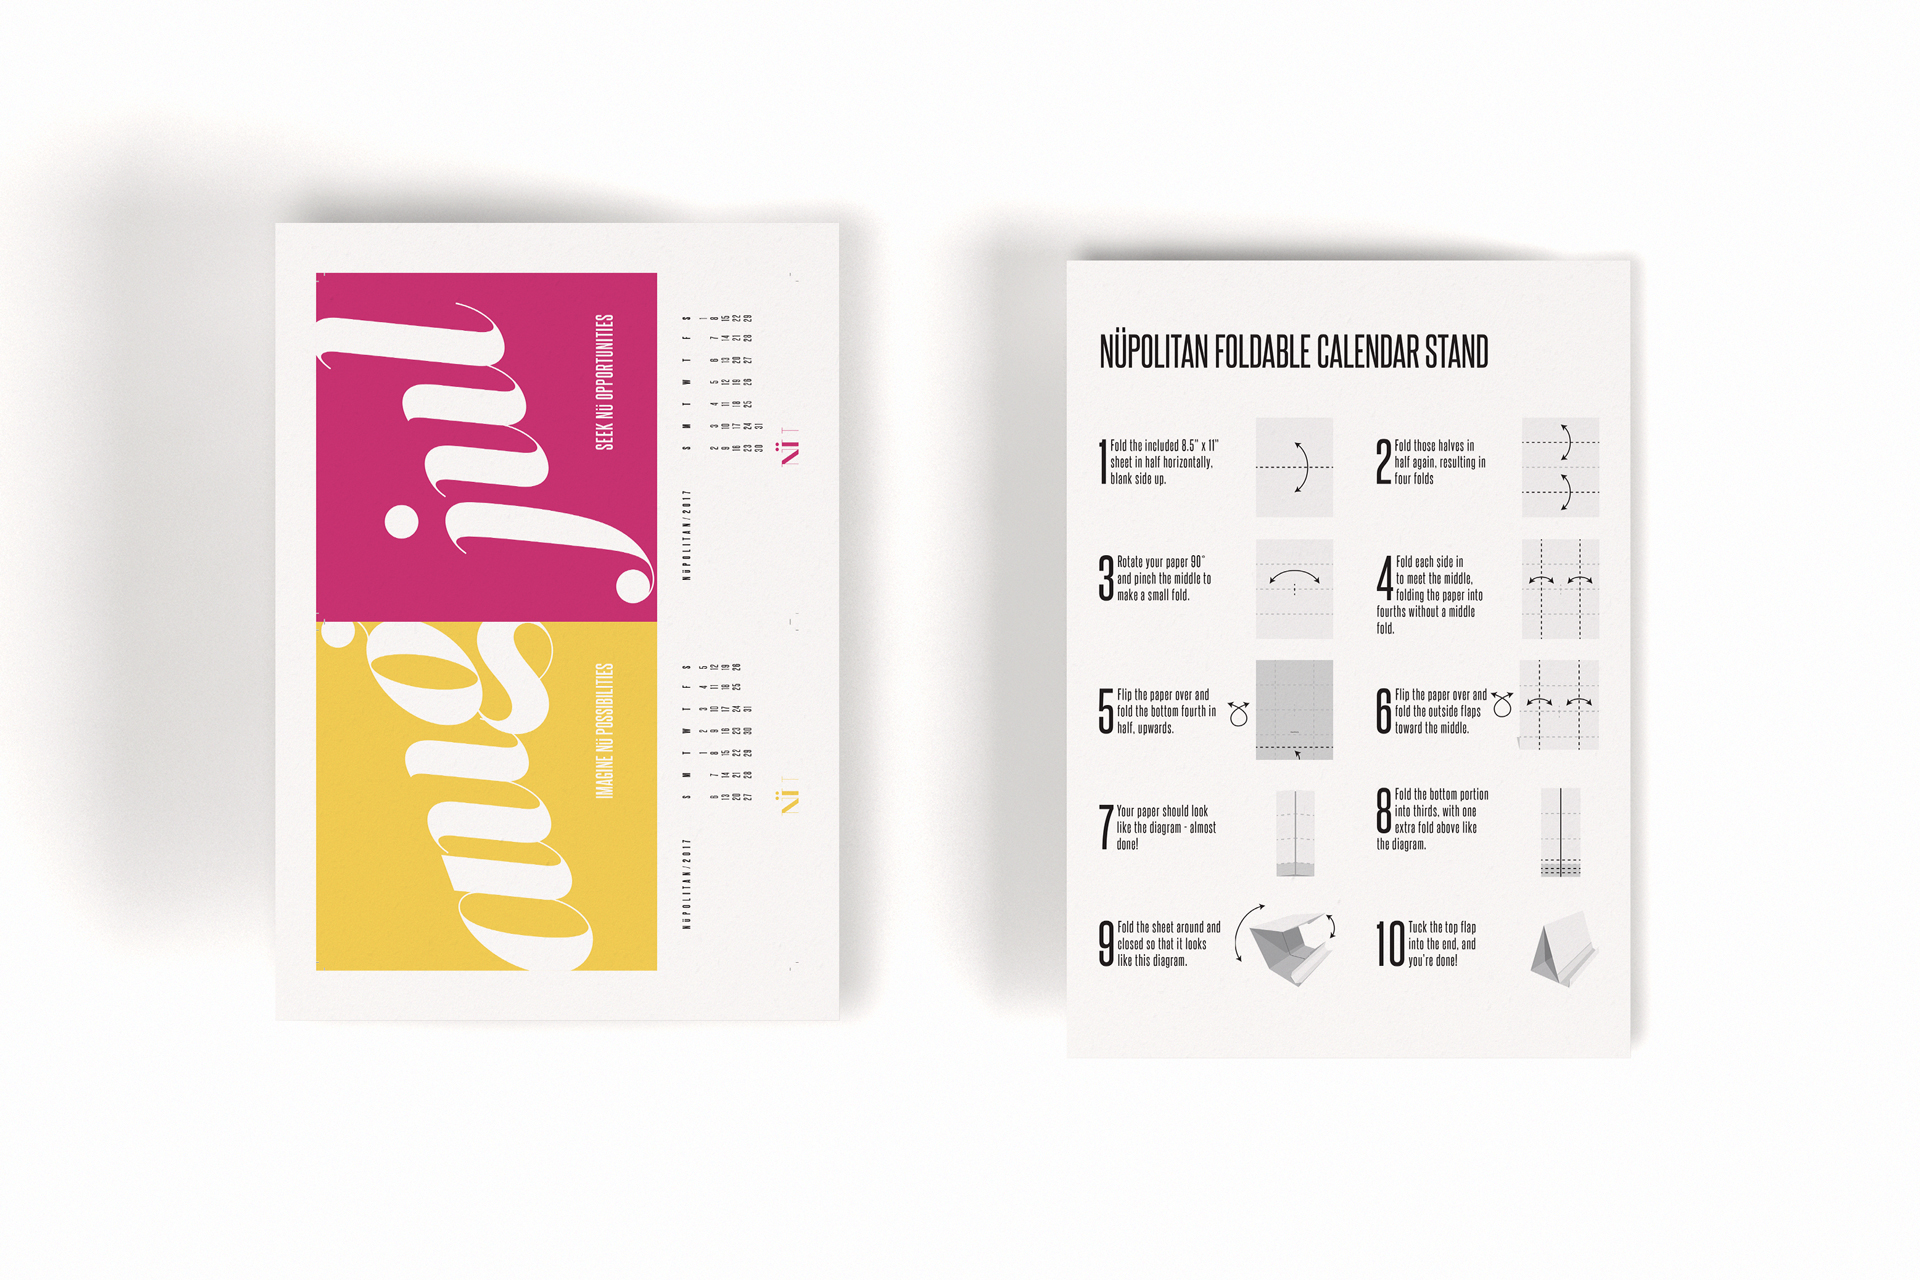 Mockup of Letter size printable calendar pages and stand instructions